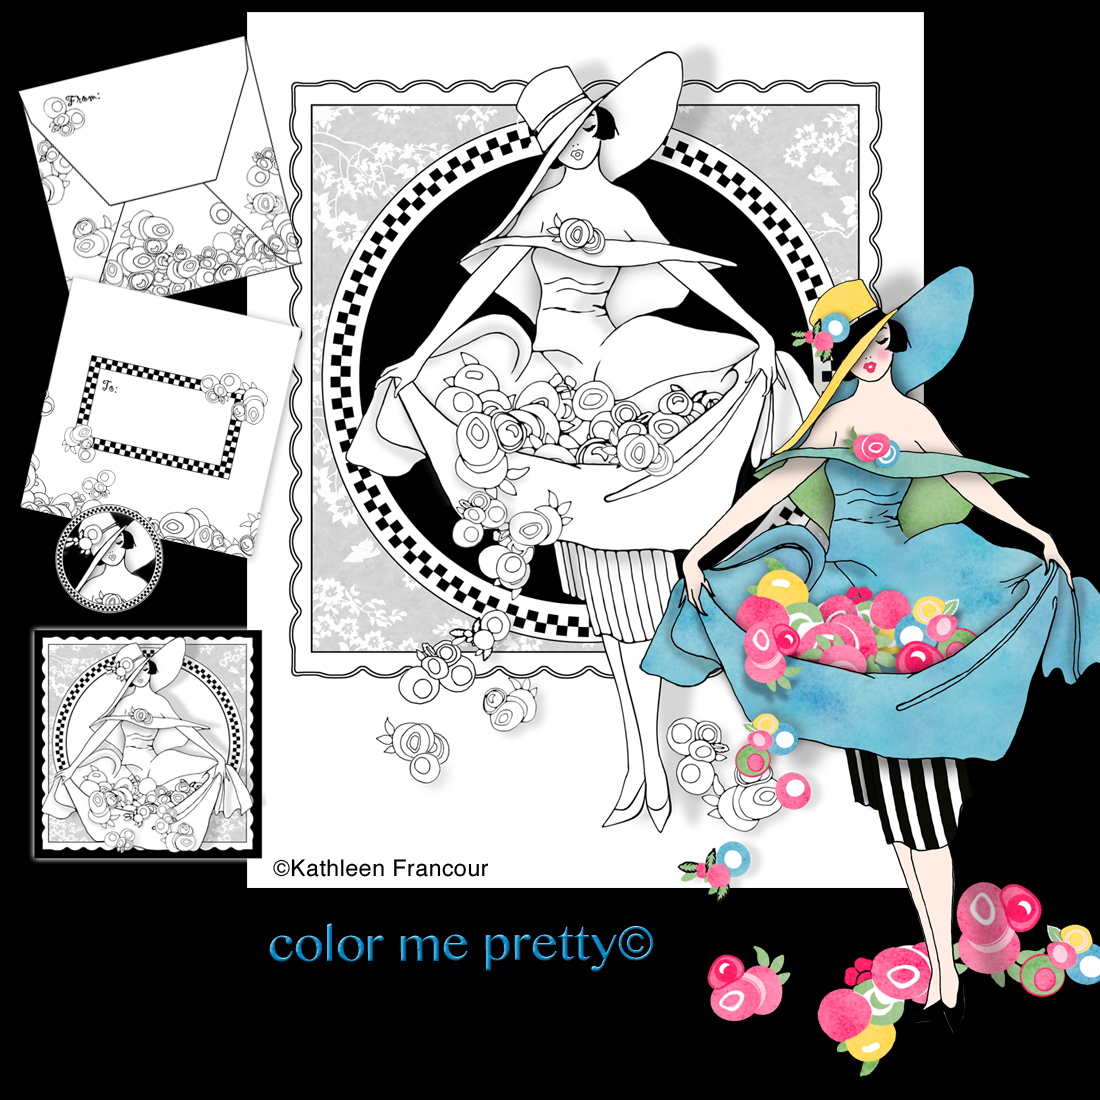 6-ECHO ART DECO-PATCHES & POSIES COLOR ME PRETTY GALLERY PG.png